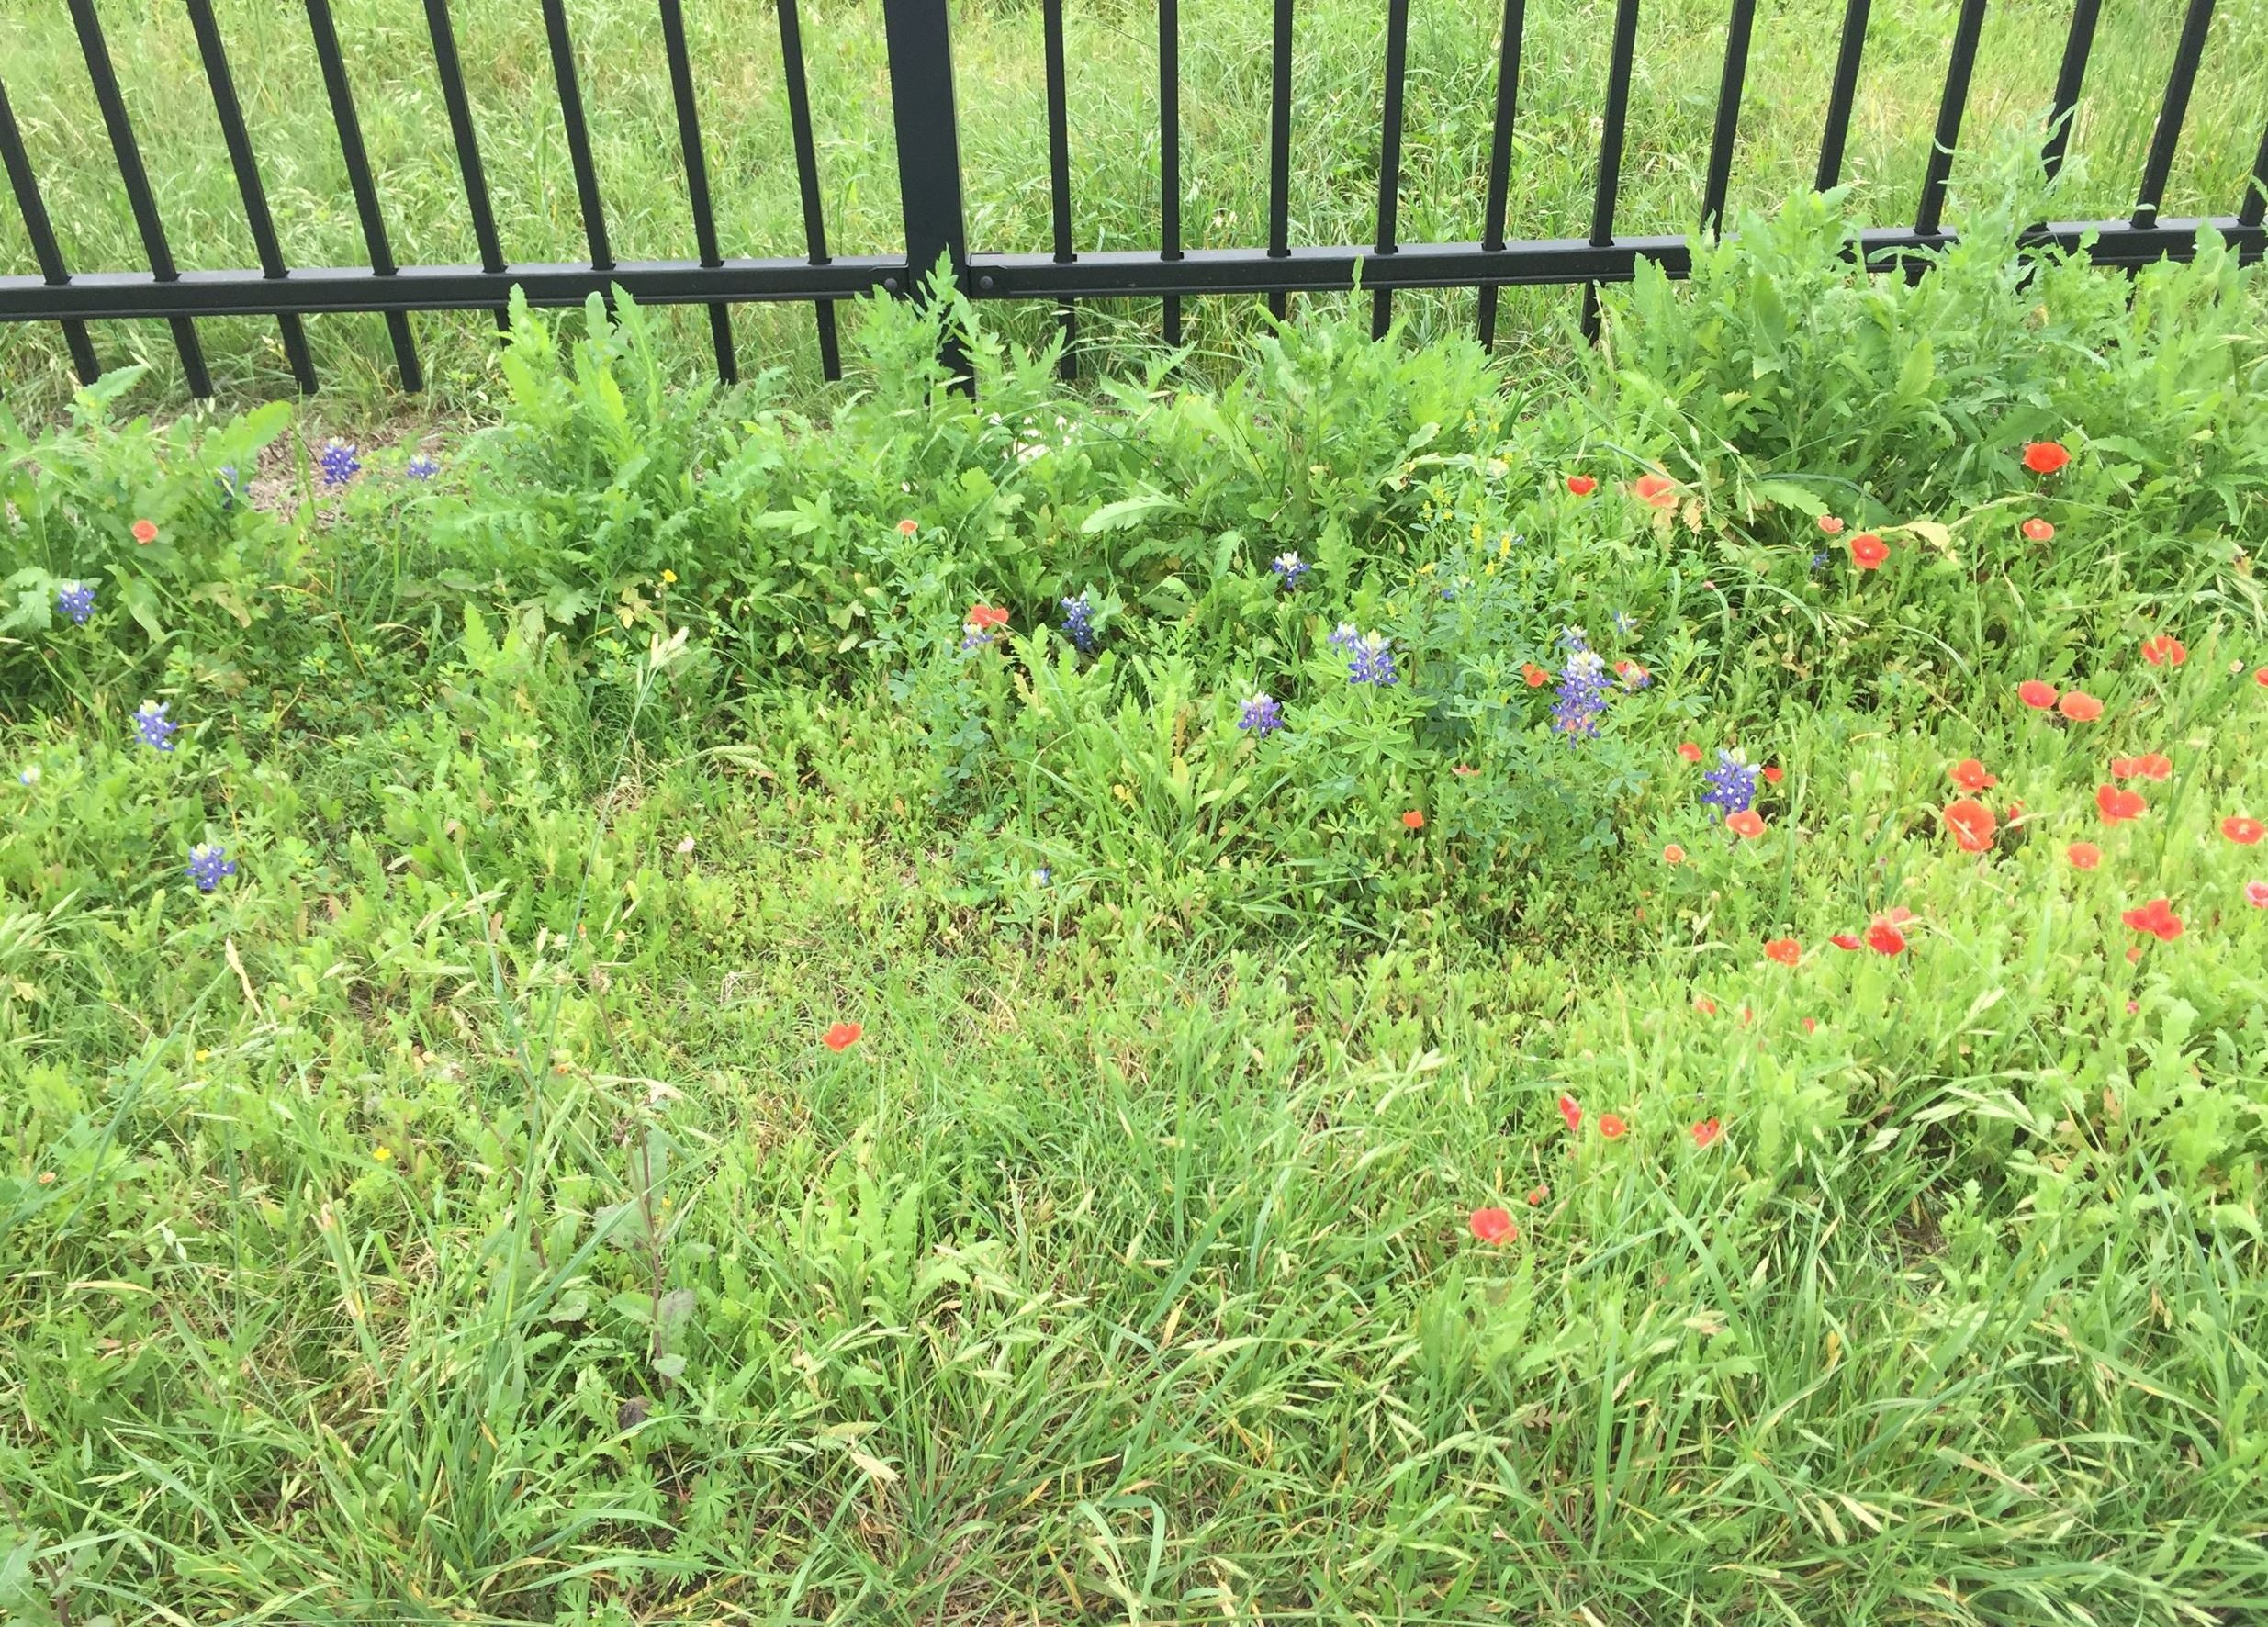 Photo of bluebonnets and poppies blooming at the CAF Hangar